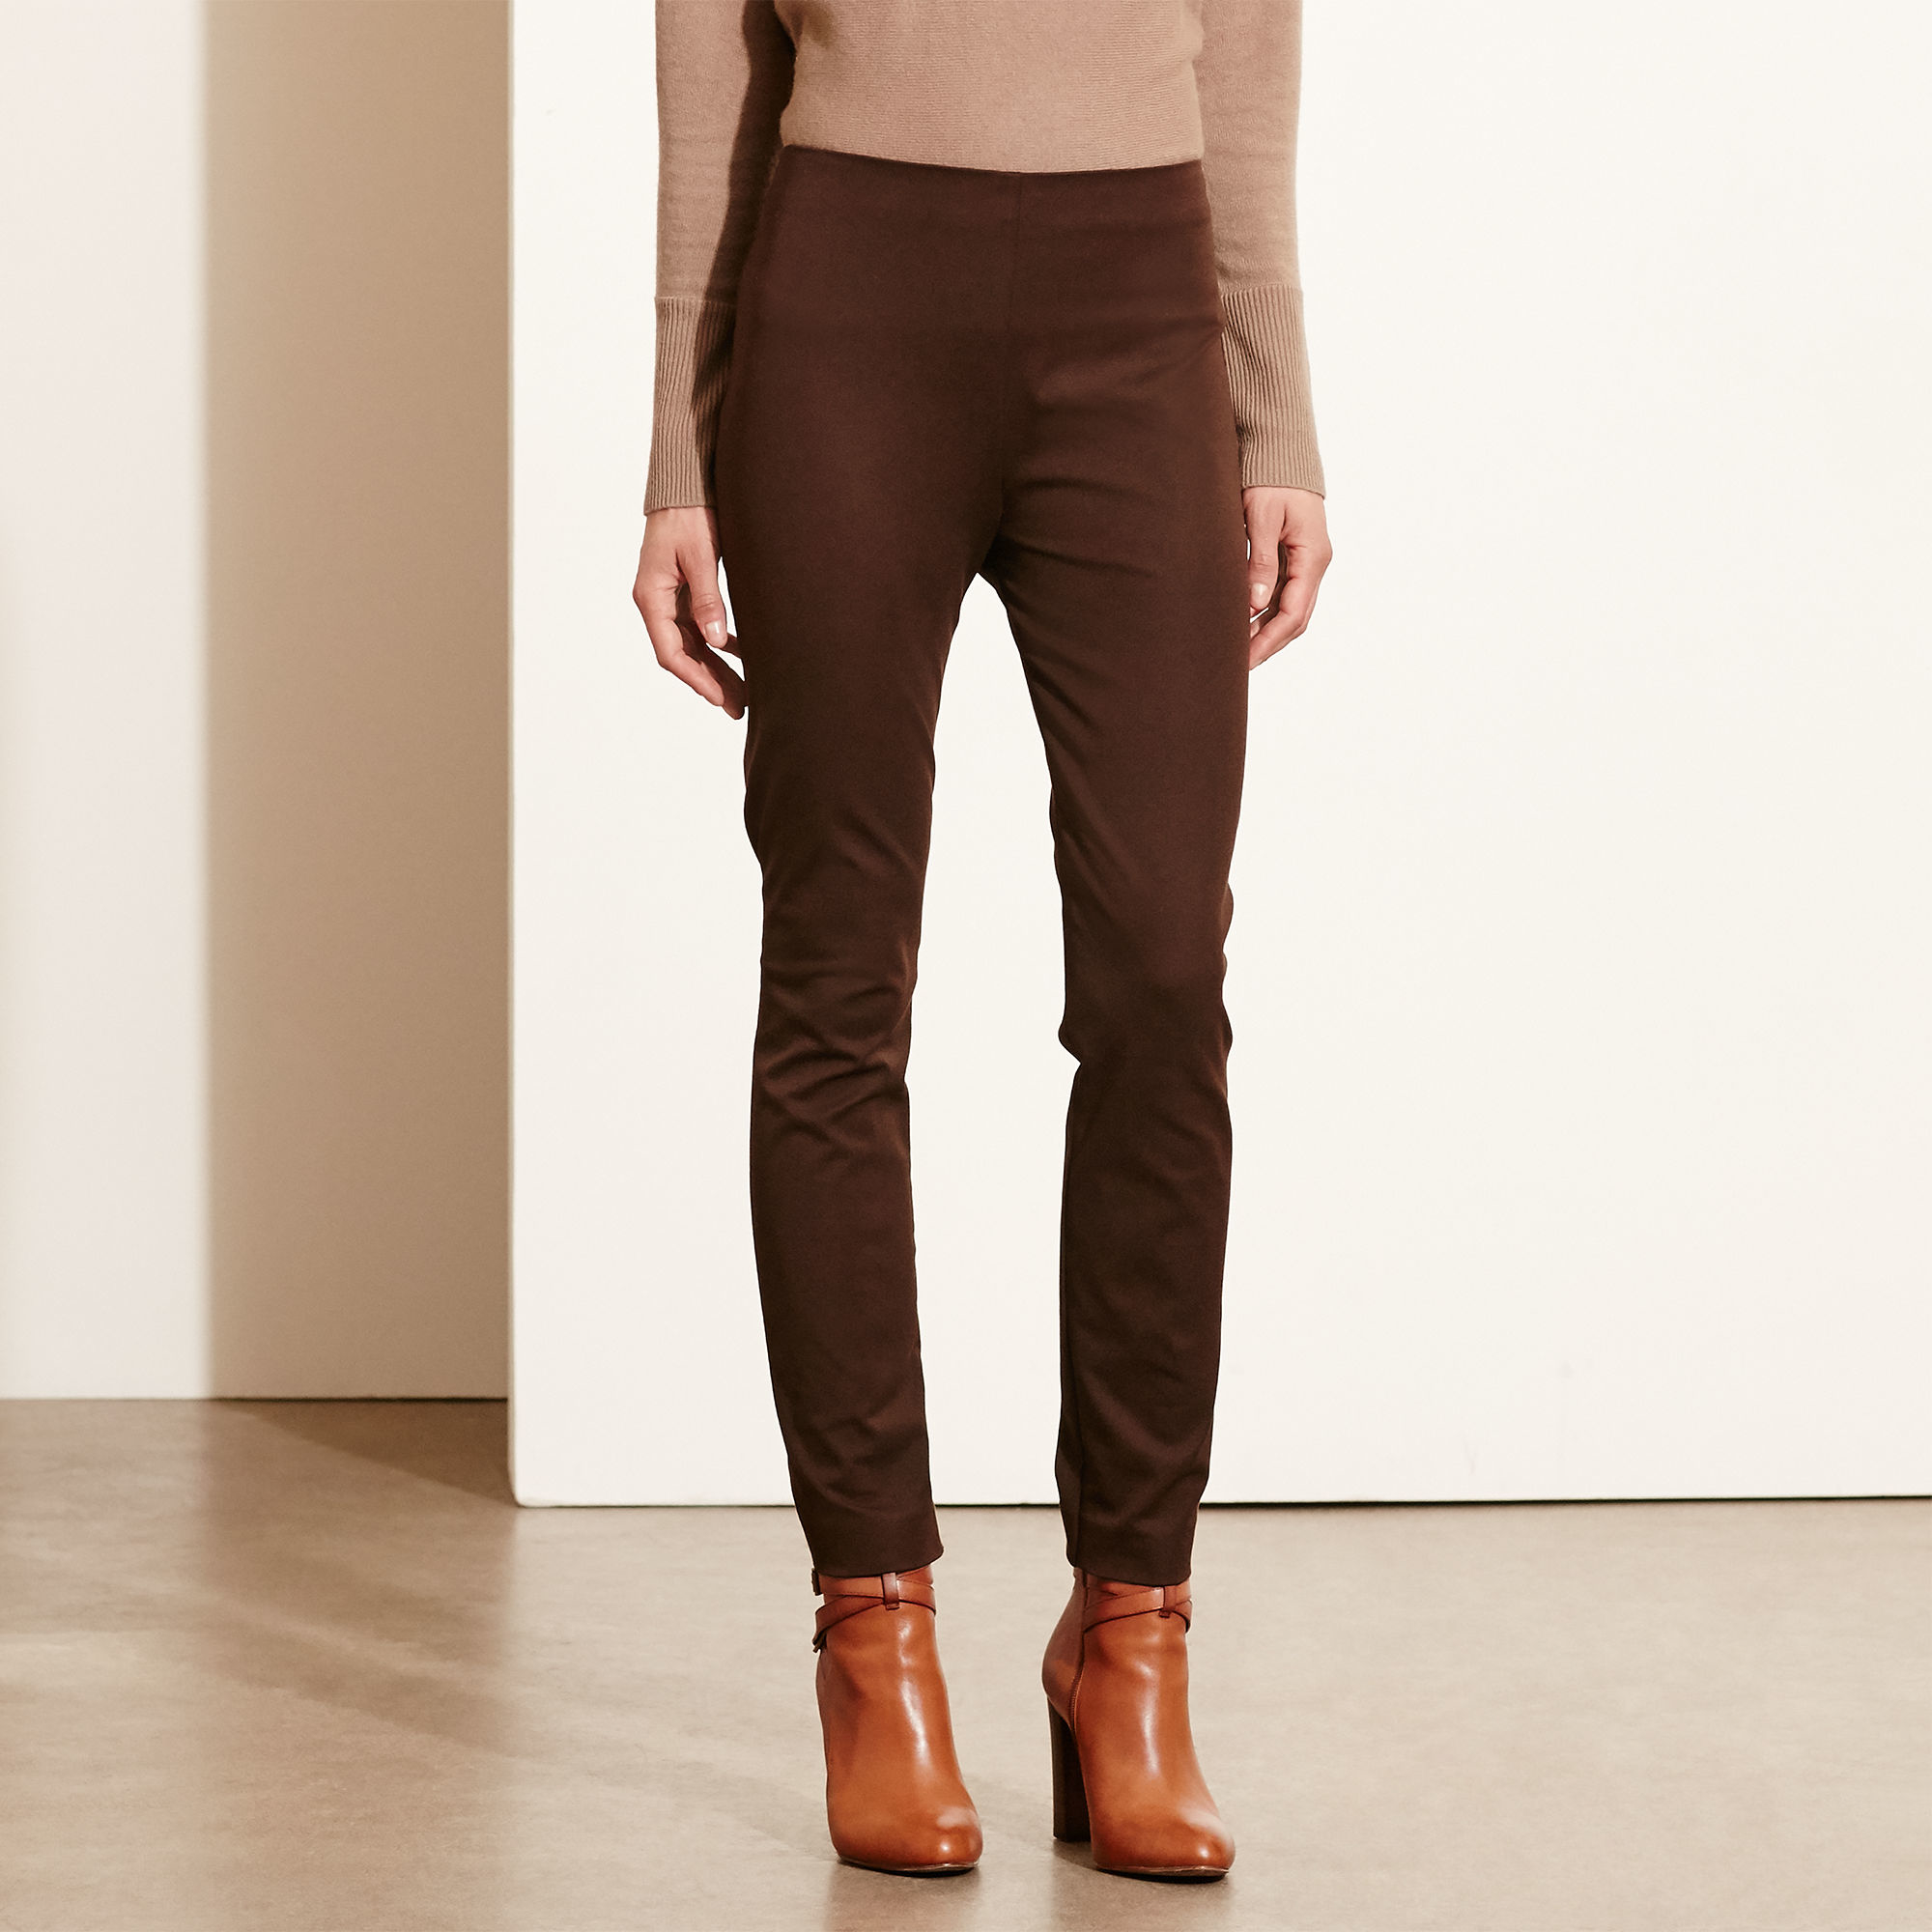 Find brown stretch pants at ShopStyle. Shop the latest collection of brown stretch pants from the most popular stores - all in one place.